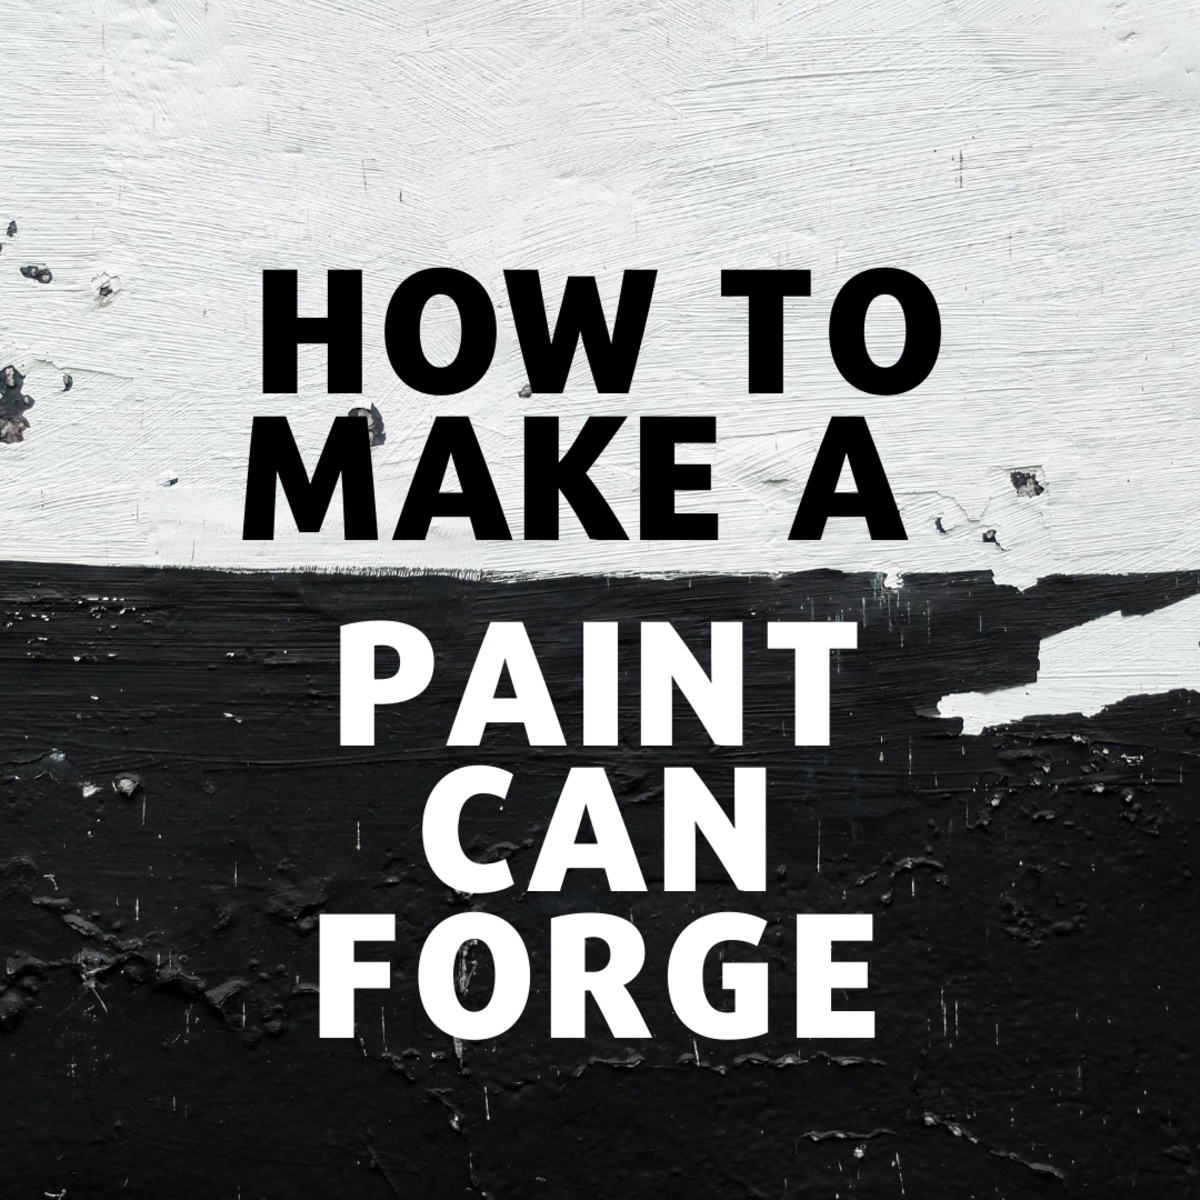 How to Make a Propane Forge From a Paint Can for Blacksmithing